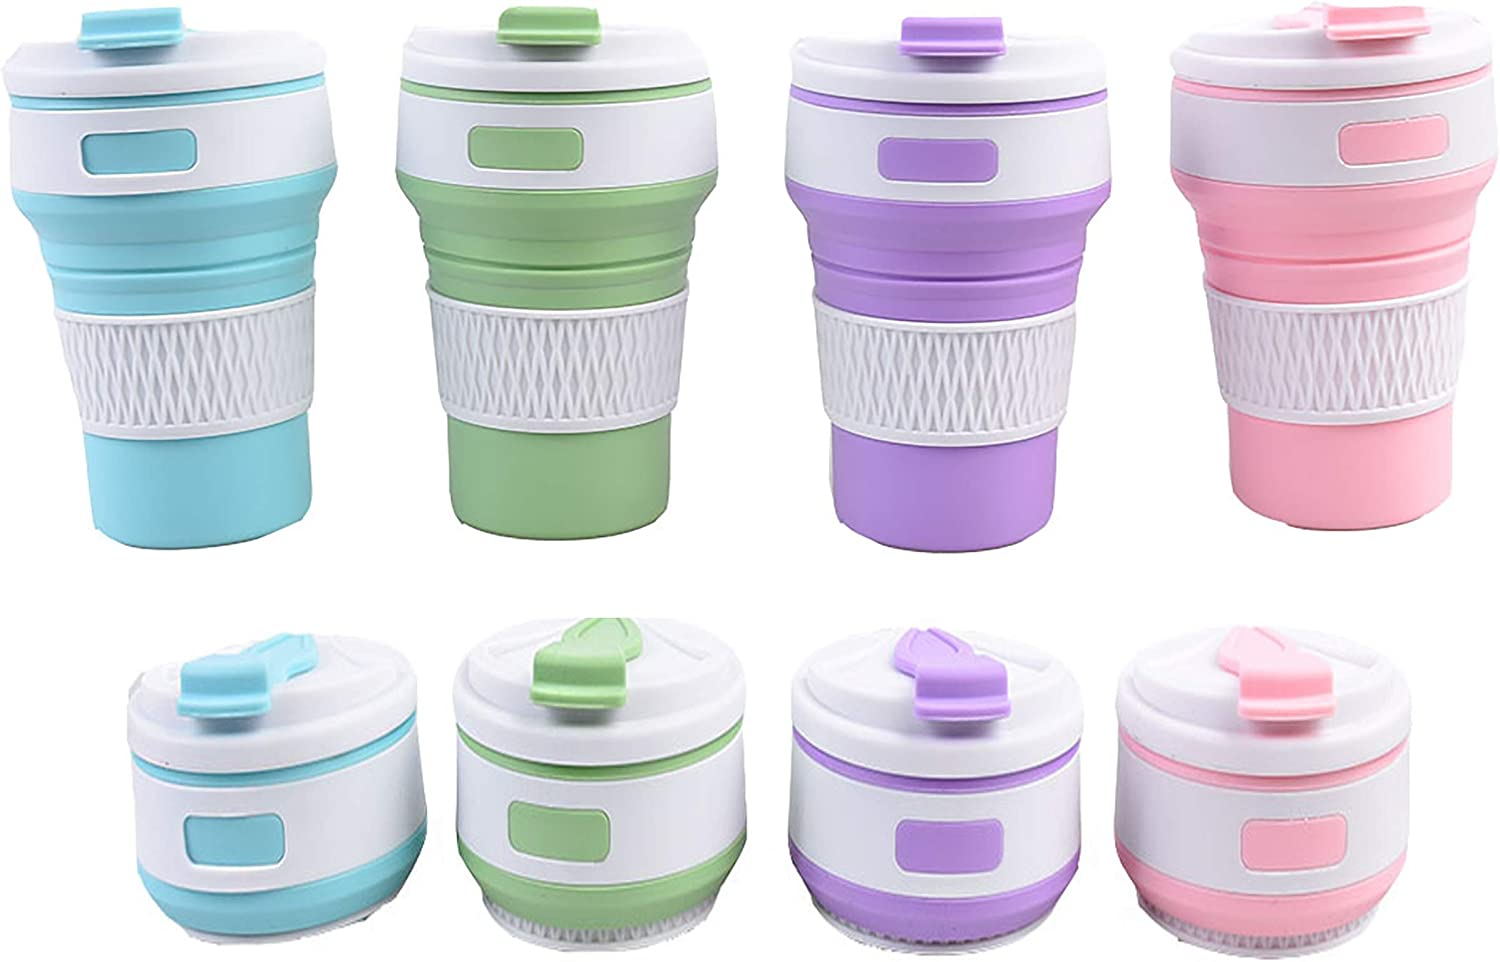 JVLM Home Collapsible Cup Silicone Foldable Cup Mug Camping Outdoor BPA Free FDA